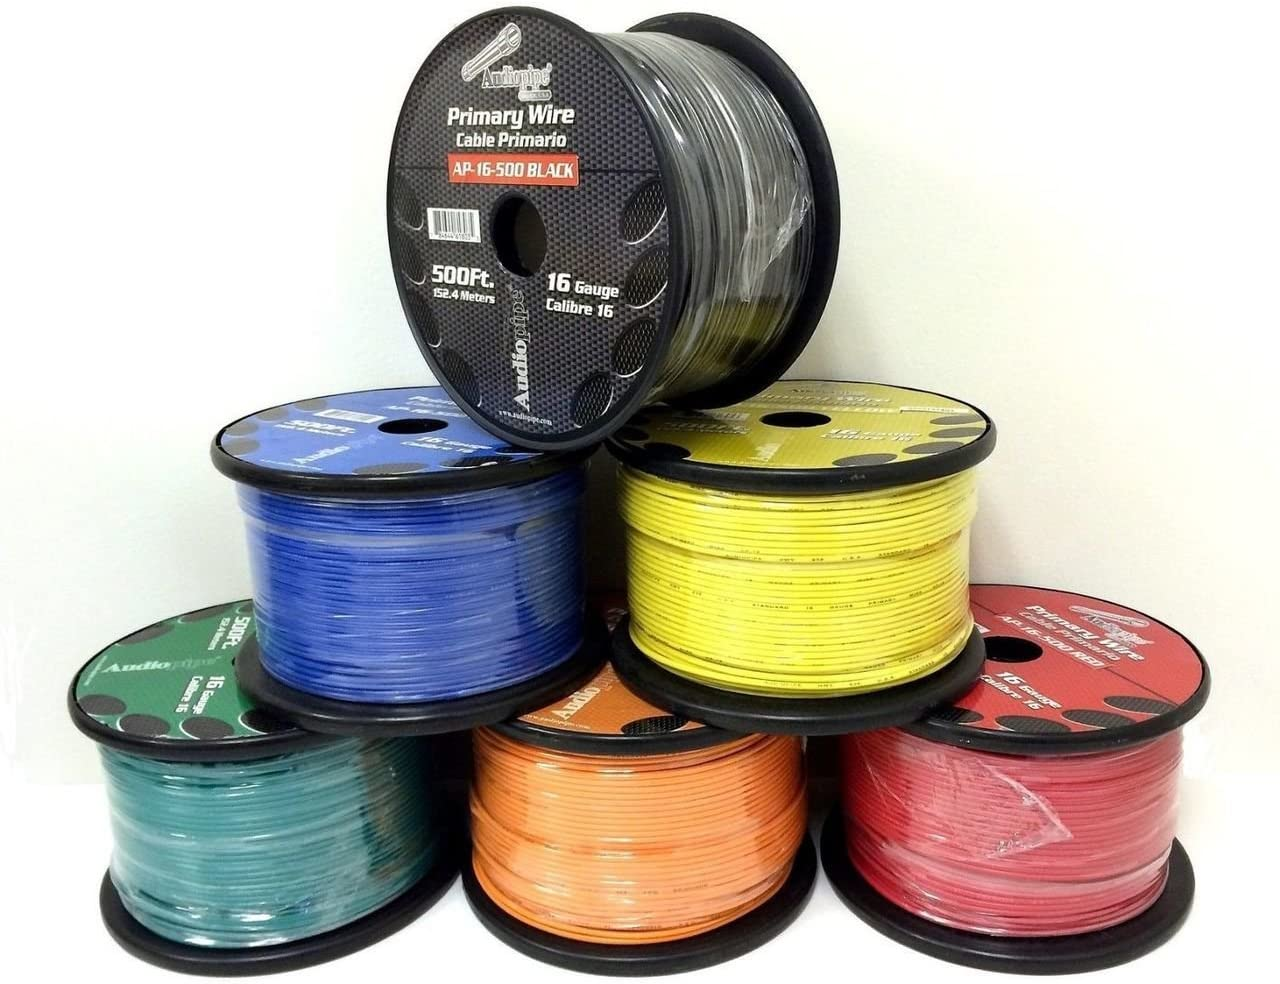 5 Rolls of 16 Gauge - 500' each Audiopipe Car Audio Home Primary Remote Wire